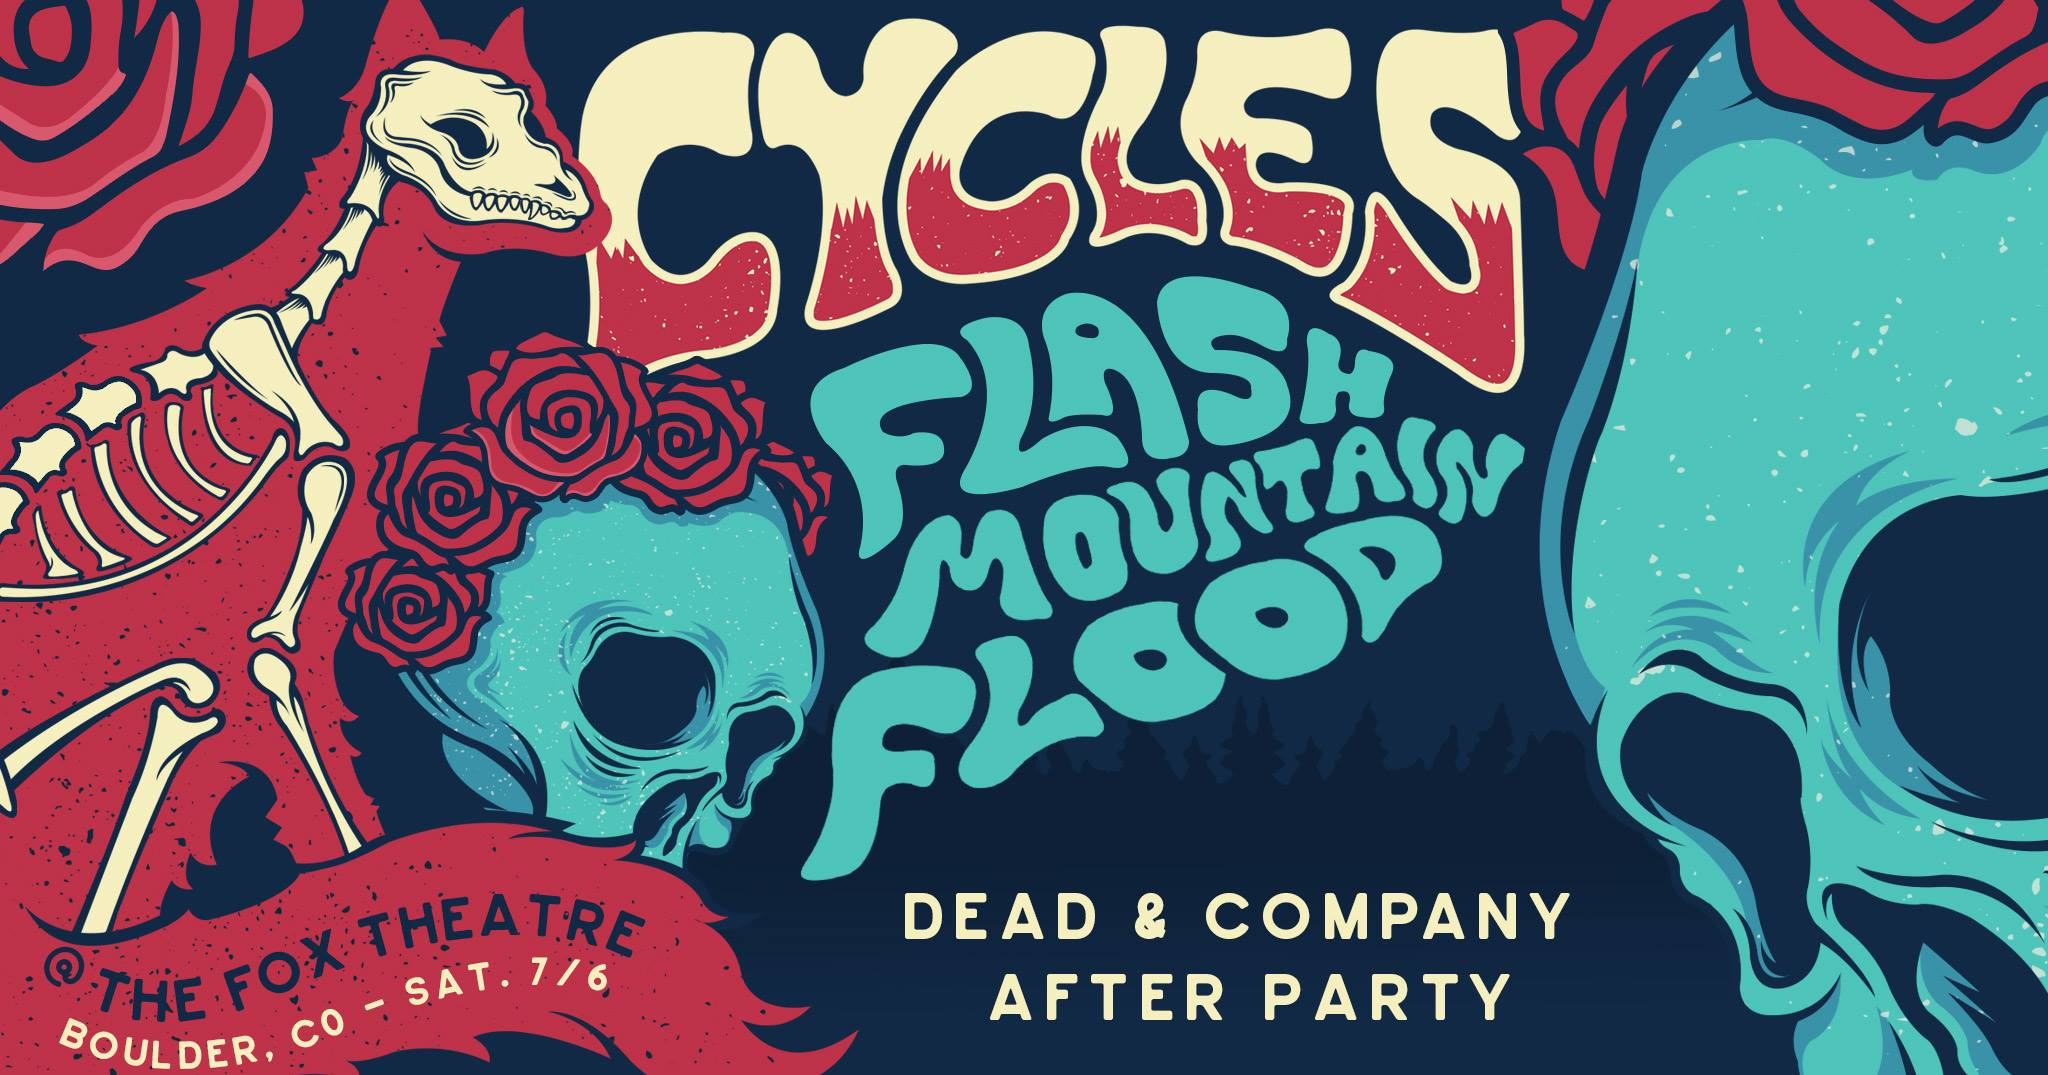 Cycles + Flash Mountain Flood | Dead & Co After Party | 7/6/19